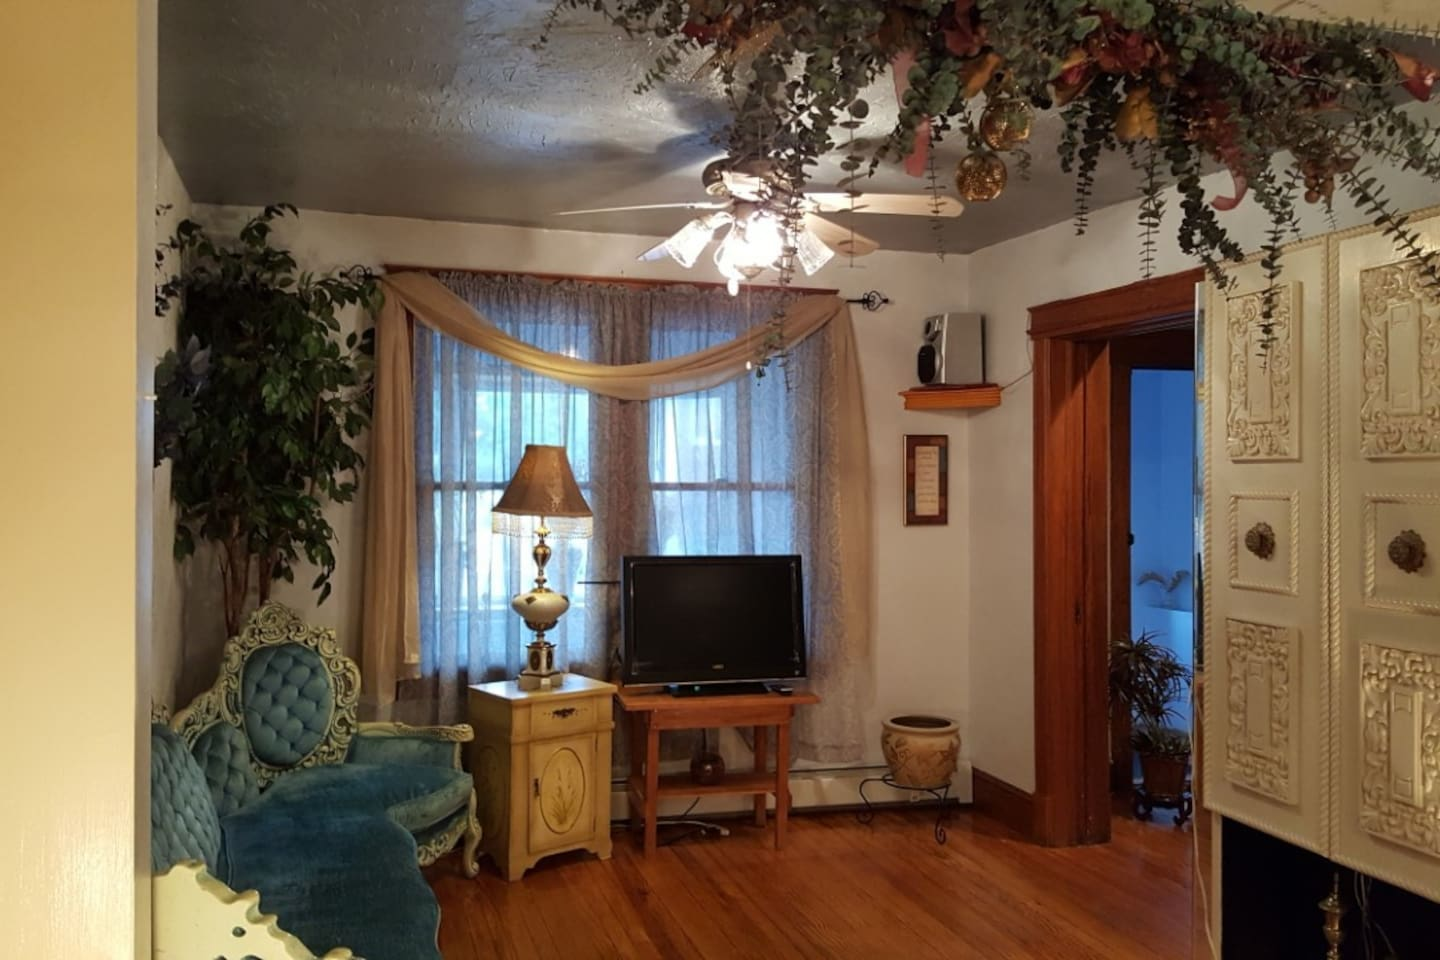 Family-friendly Livingroom w/ an entertainment center with games, puzzles, playing cards and others for your enjoyment